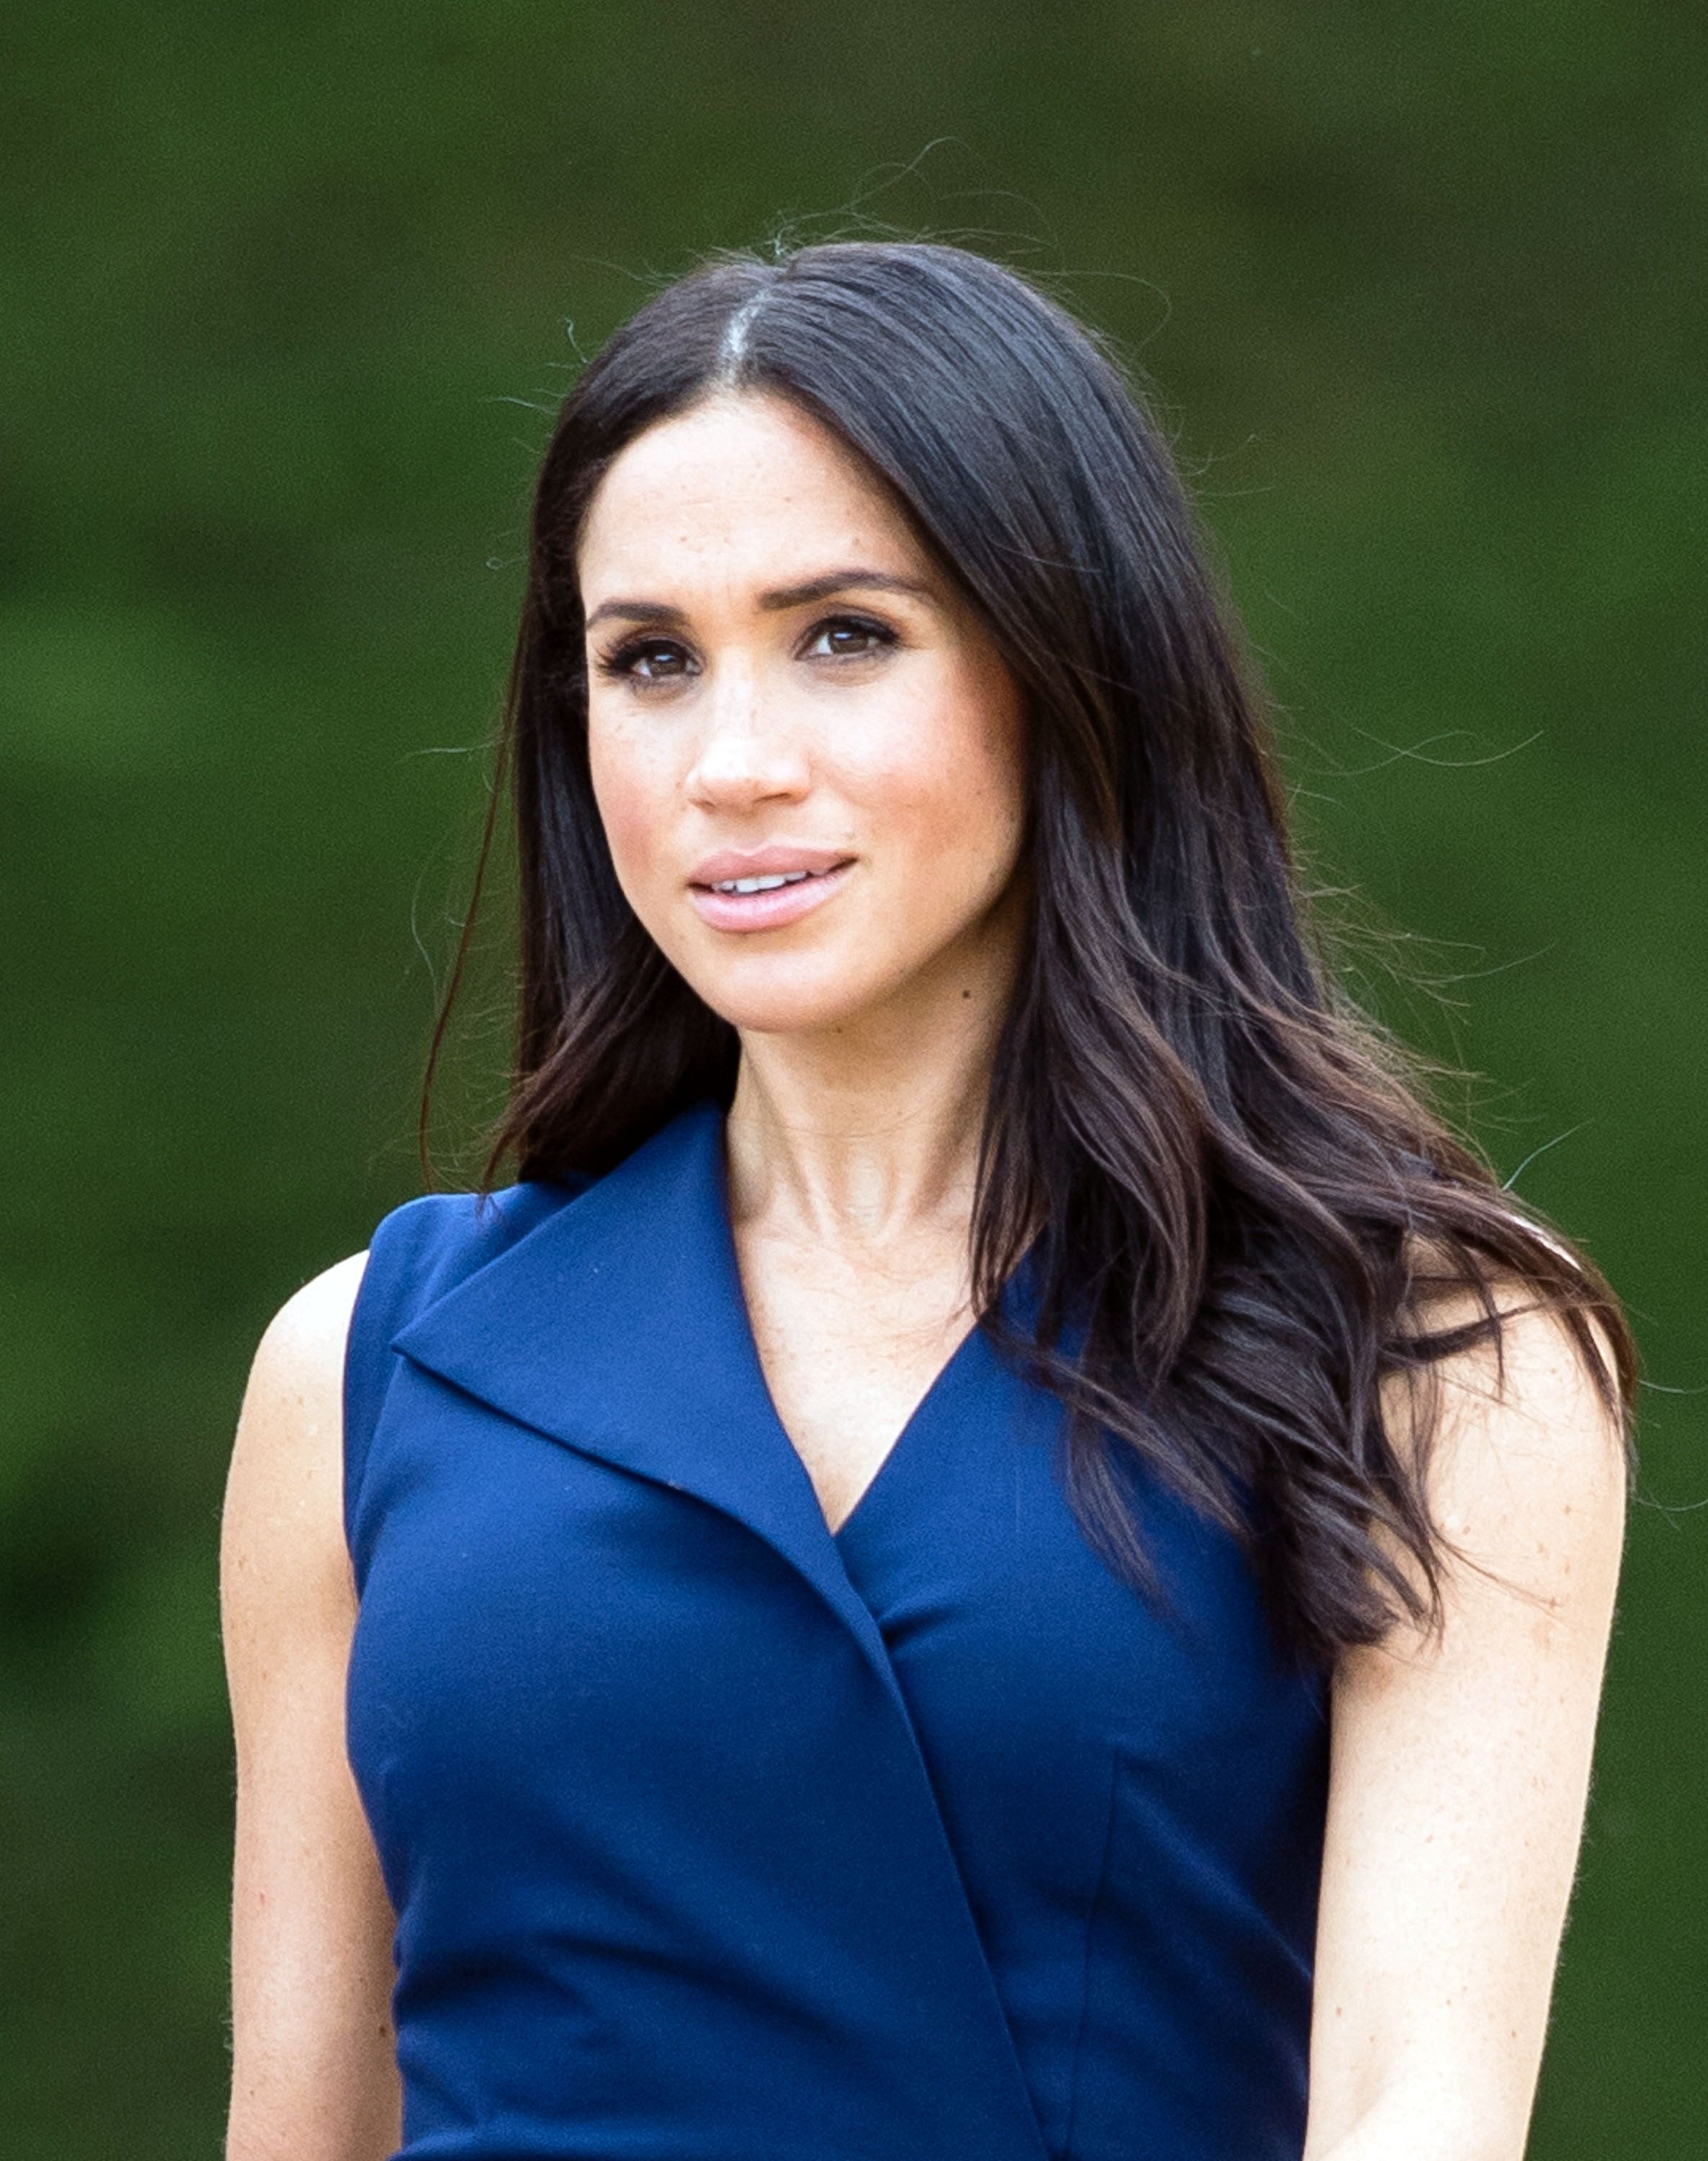 Meghan Markle Wrote About Her